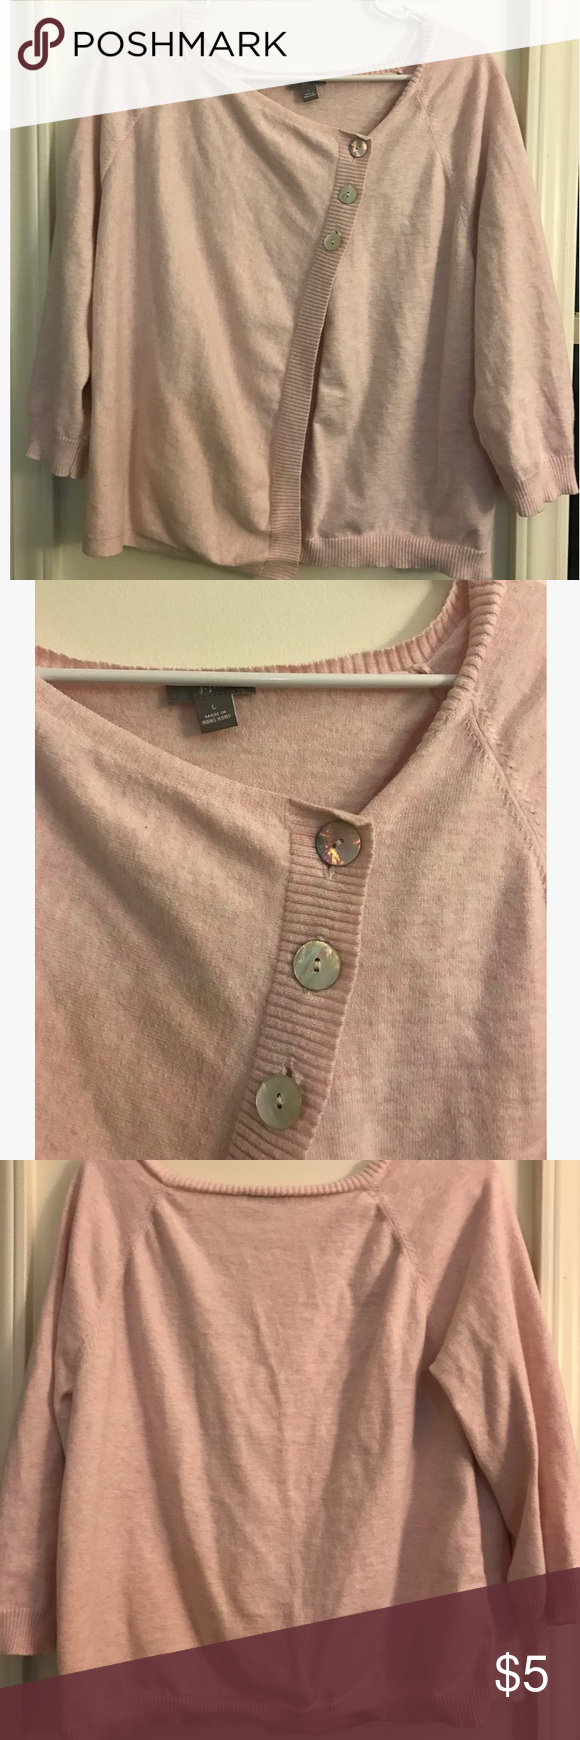 Pink Sweater Gently worn, good condition. The tag is about to fall off, but the brand is J Jill. Offers welcome on bundles! Sweaters